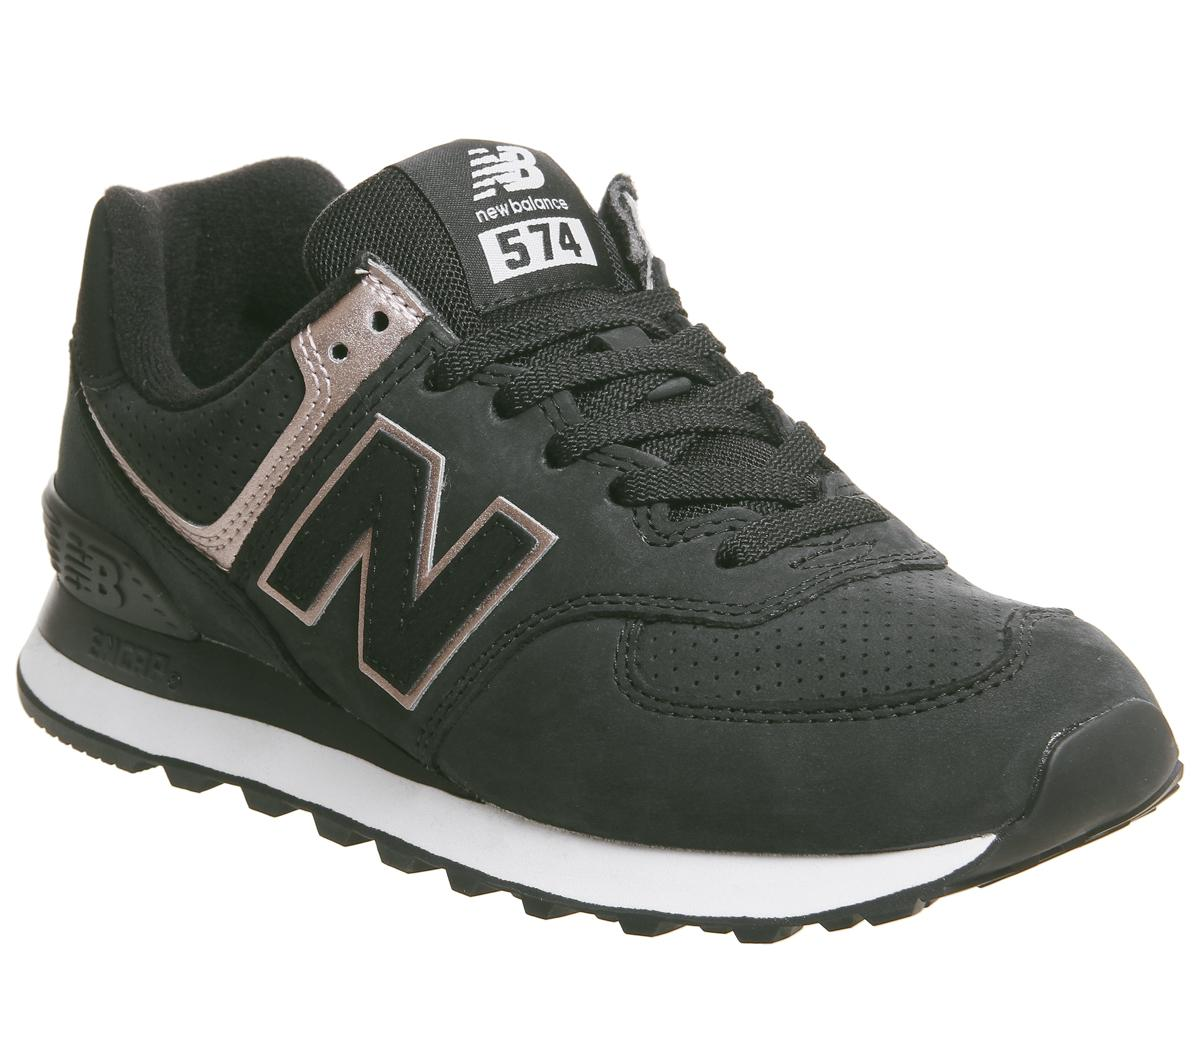 caravana referir colina  New Balance 574 Trainers Black White Rose Gold - Hers trainers